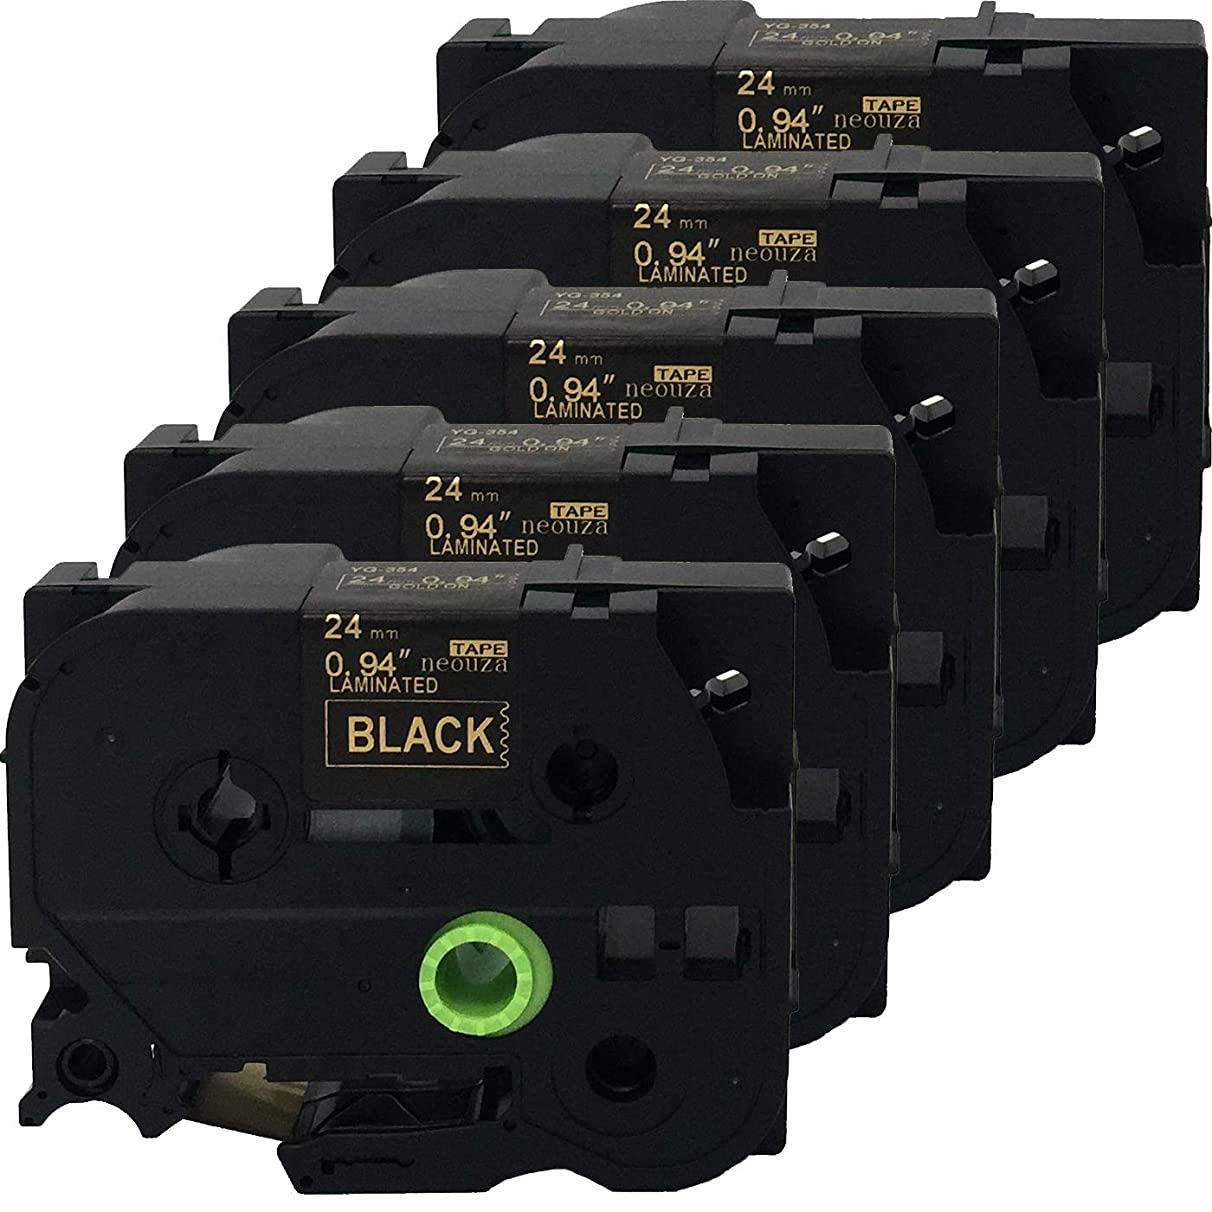 NEOUZA 5PK Compatible For Brother P-Touch Laminated Tze TZ Label Tape Cartridge 24mm x 8m (TZe-354 Gold on Black)